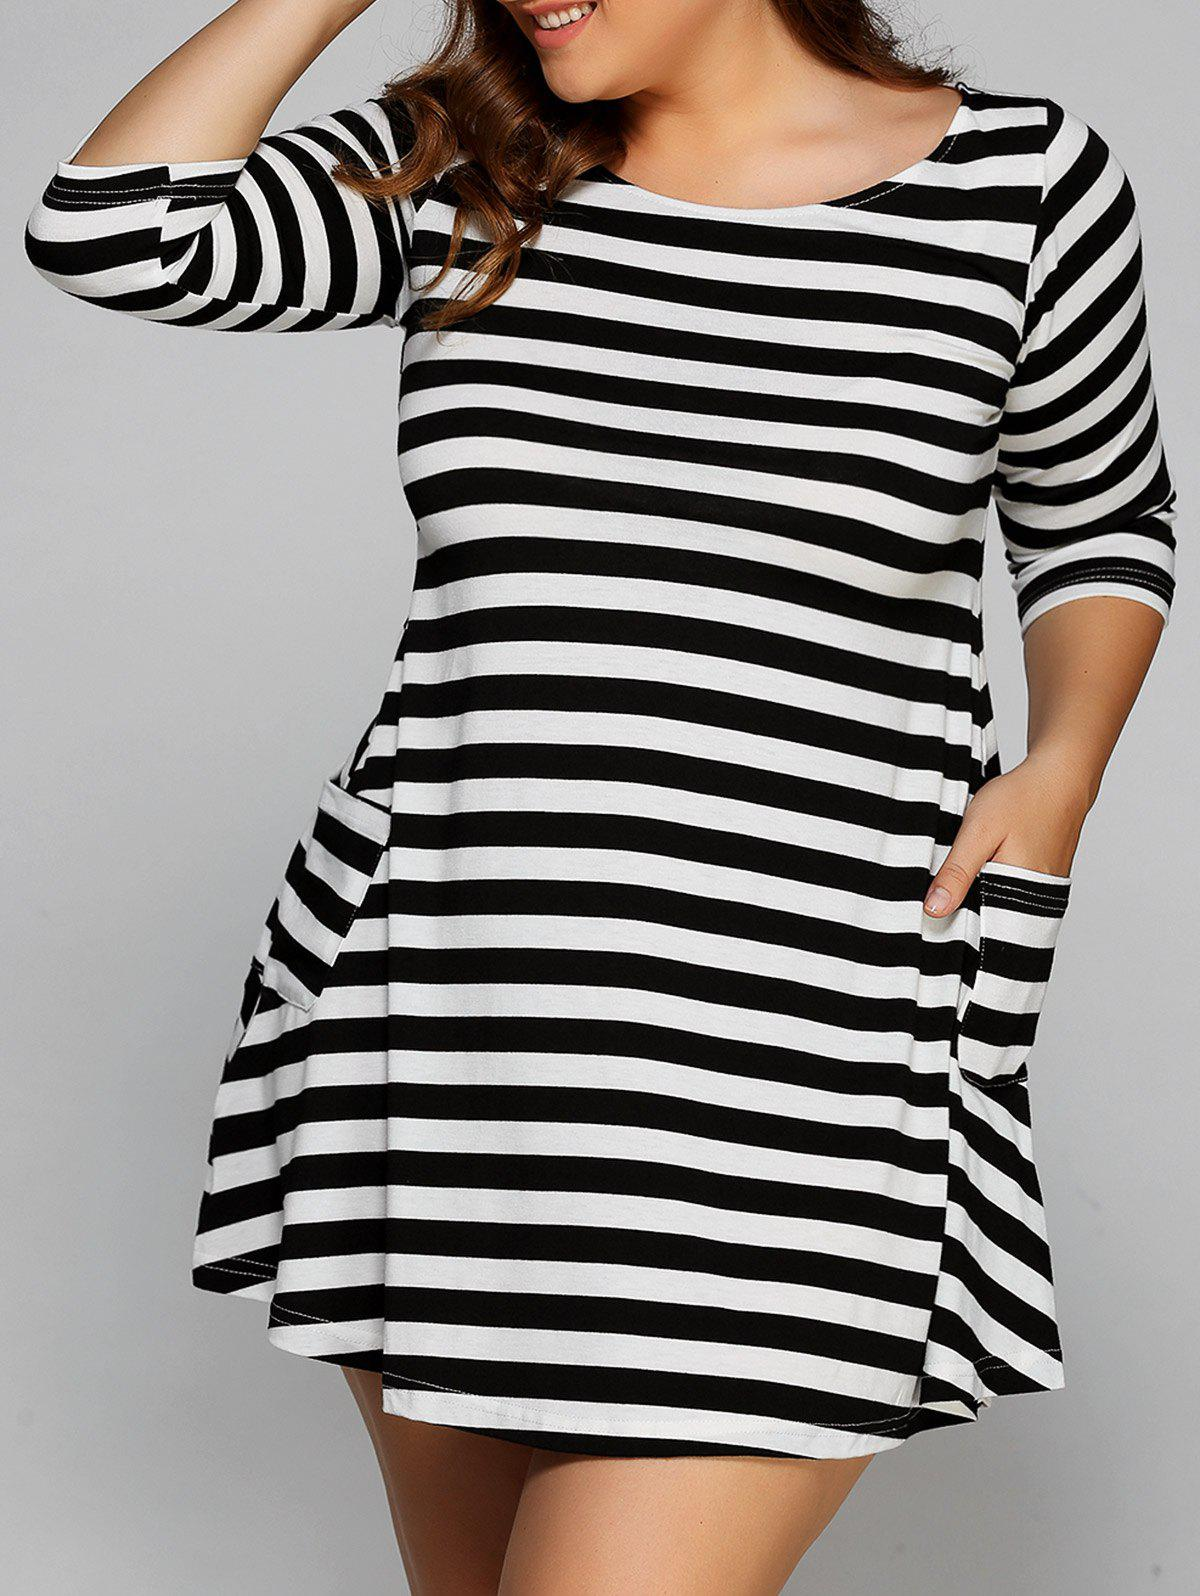 3/4 Sleeve Striped Mini T-Shirt DressWomen<br><br><br>Size: S<br>Color: WHITE AND BLACK